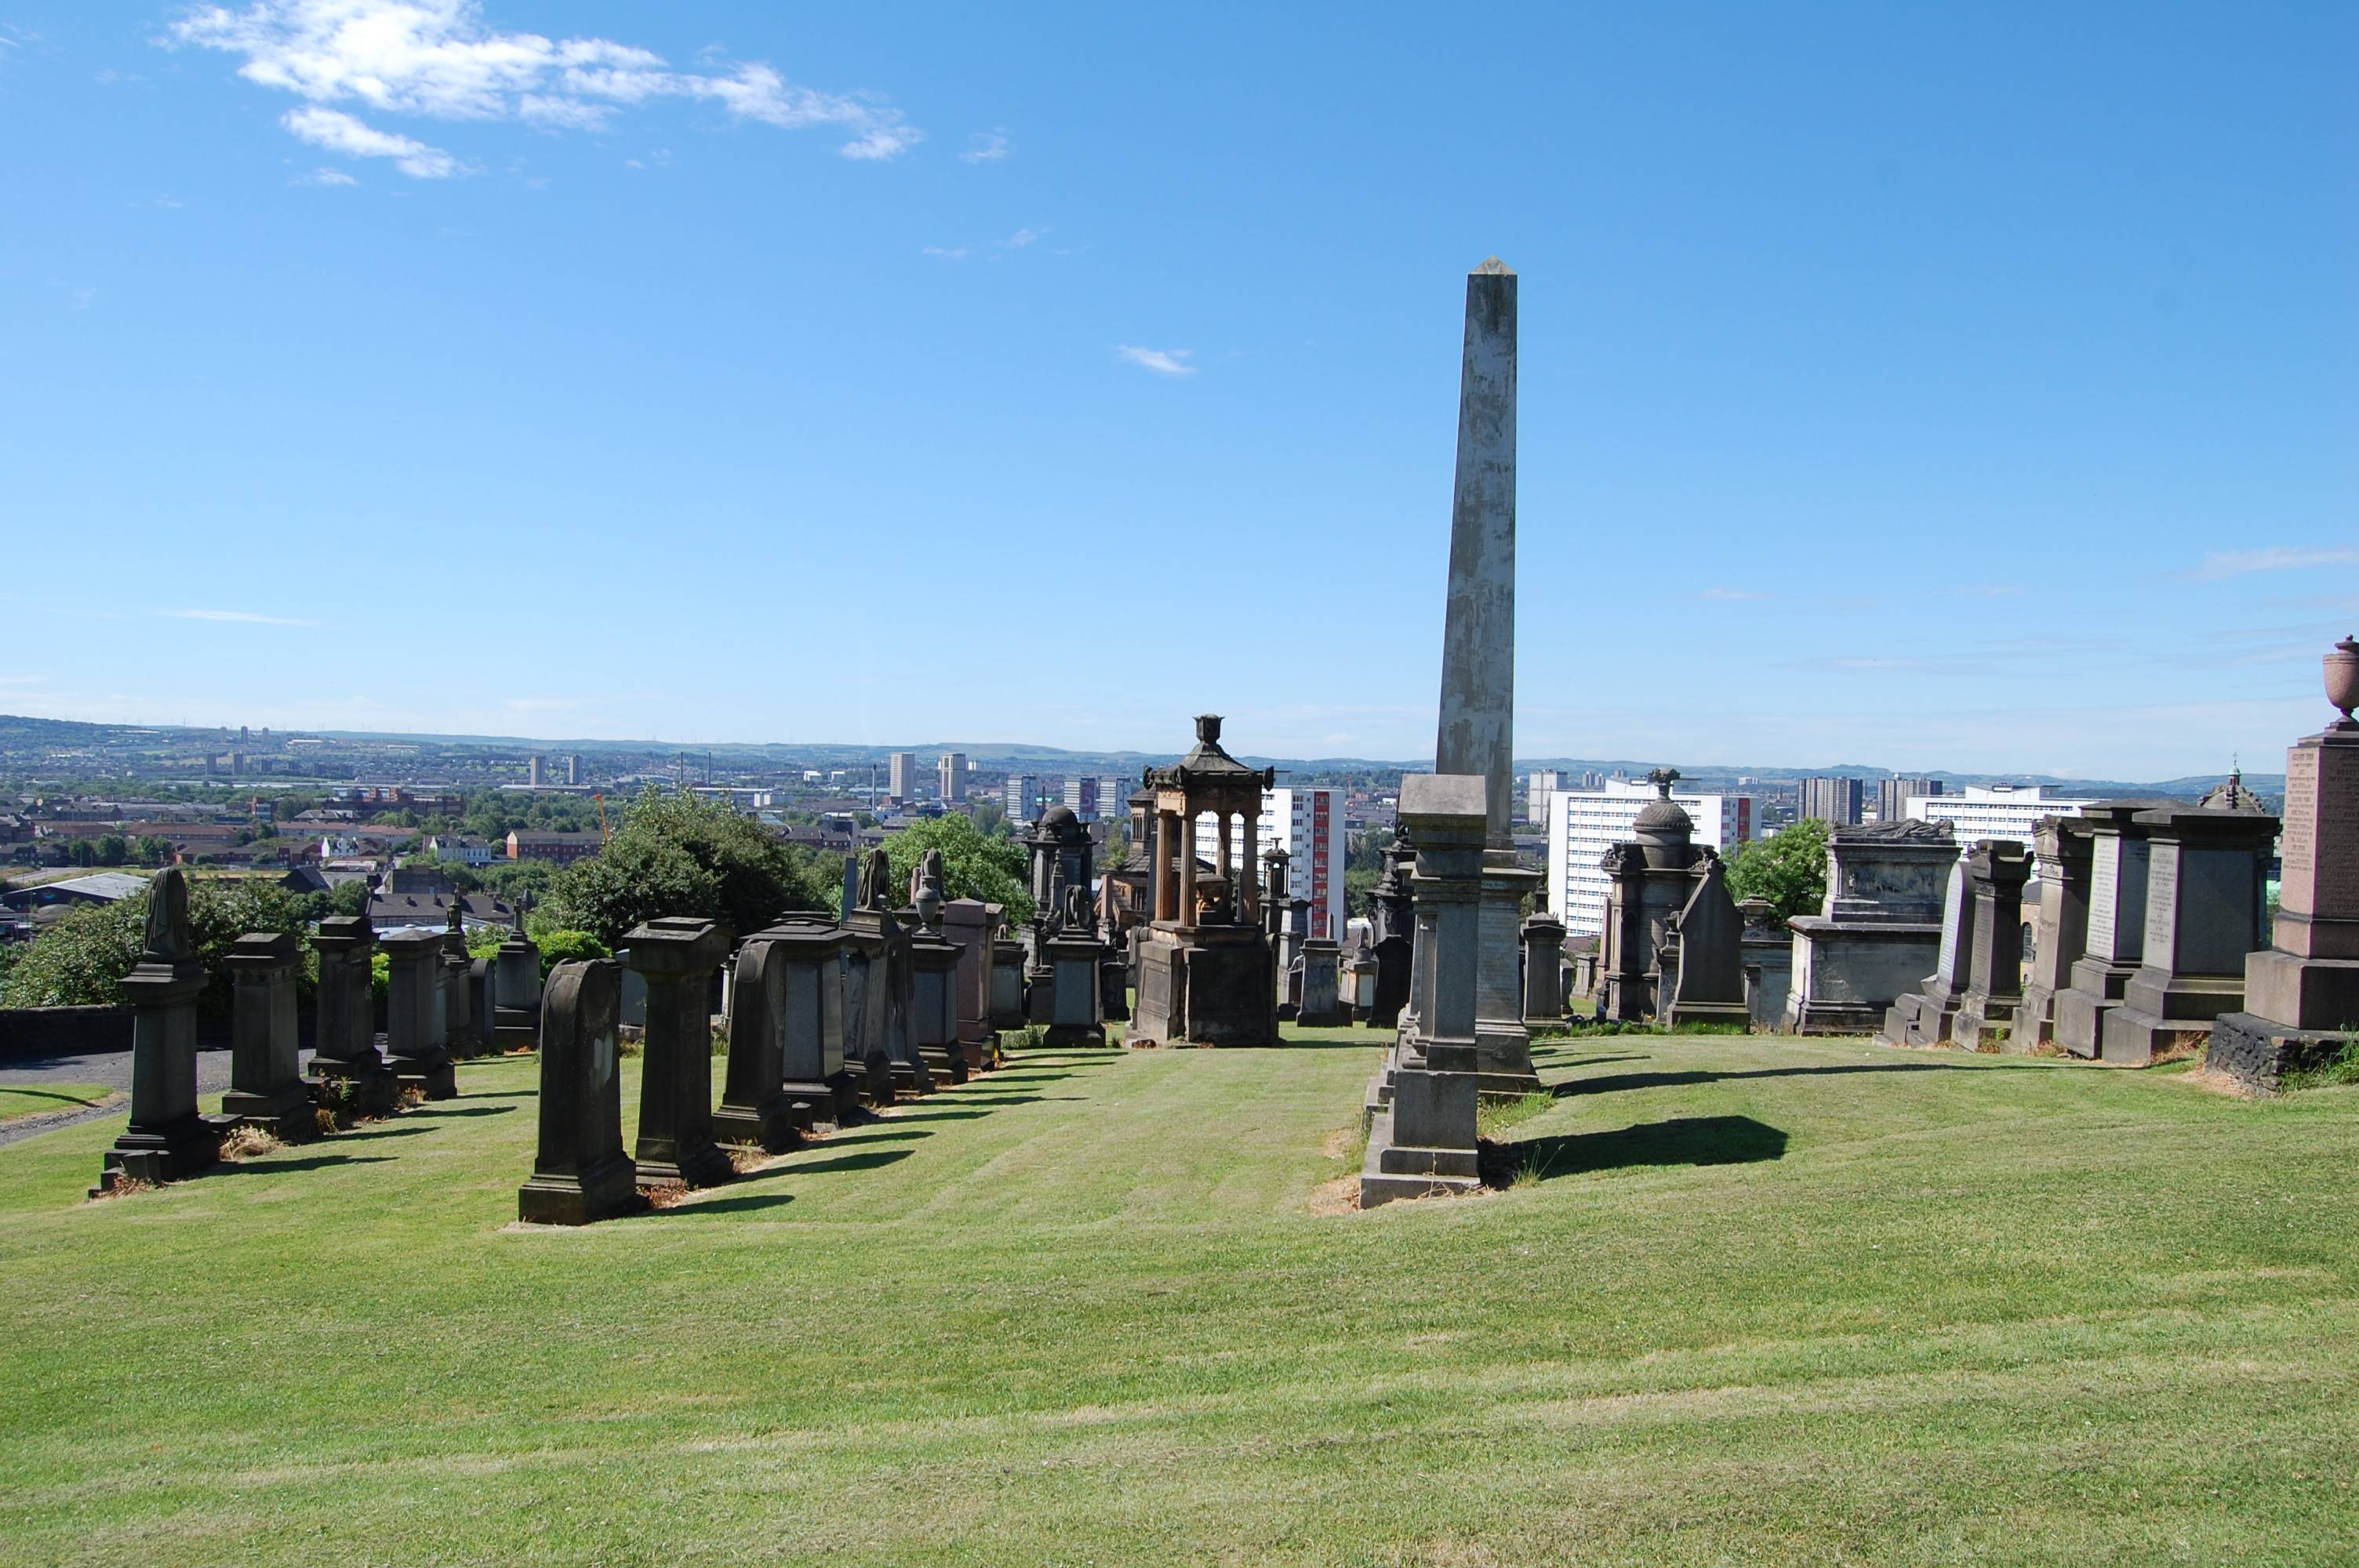 The Necropolis in Glasgow is regarded as one of the most significant cemeteries in Europe. The immense Victorian monument garden of 37 acres provides a stunning elevated view of the city and is the final resting place of more than 50,000 people, many of them notable. Free walking tours are offered.